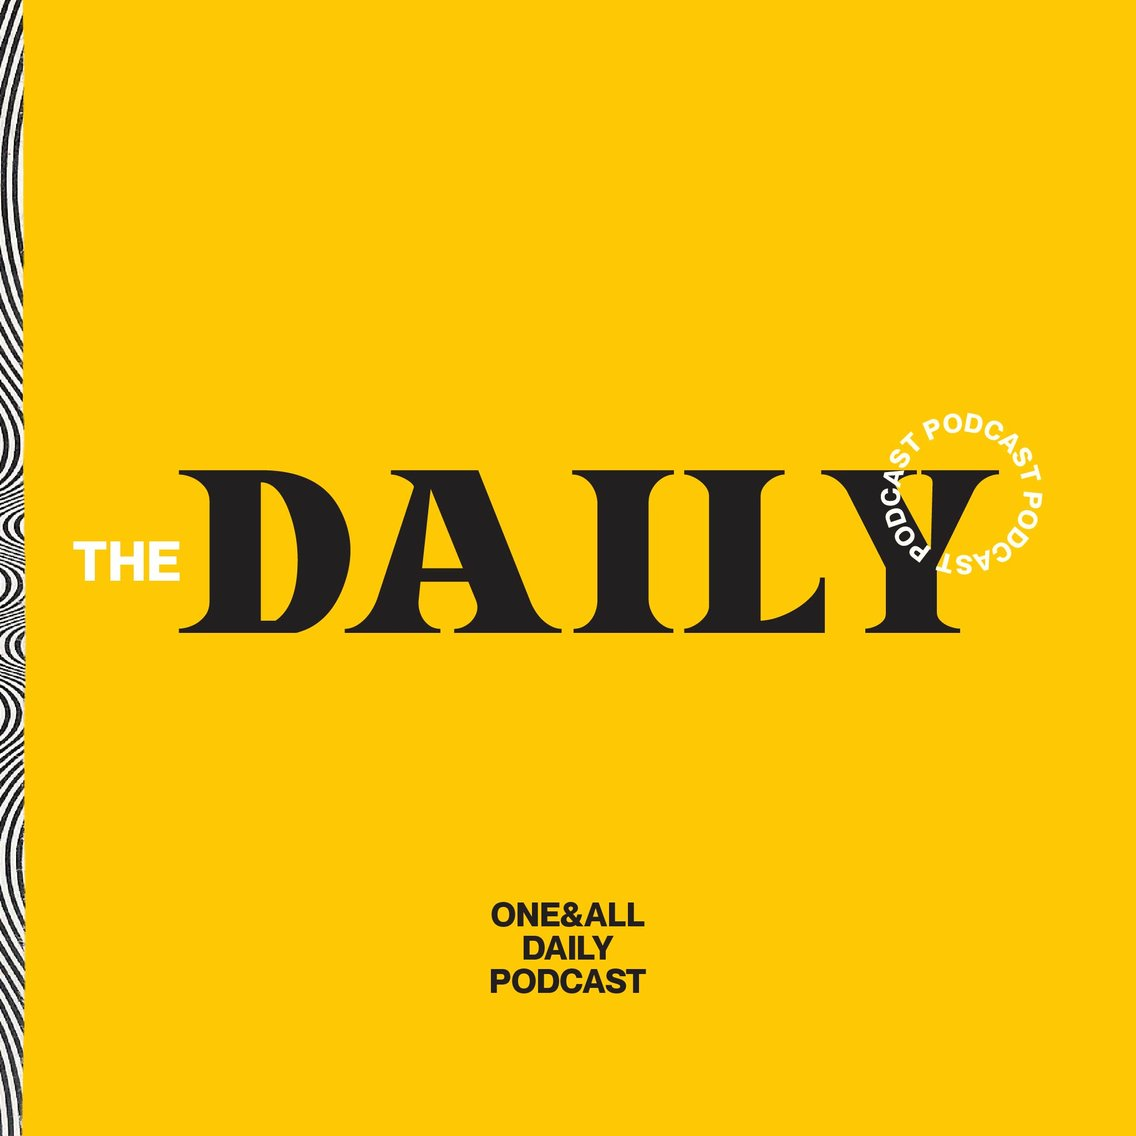 ONE&ALL Daily Podcast - Cover Image